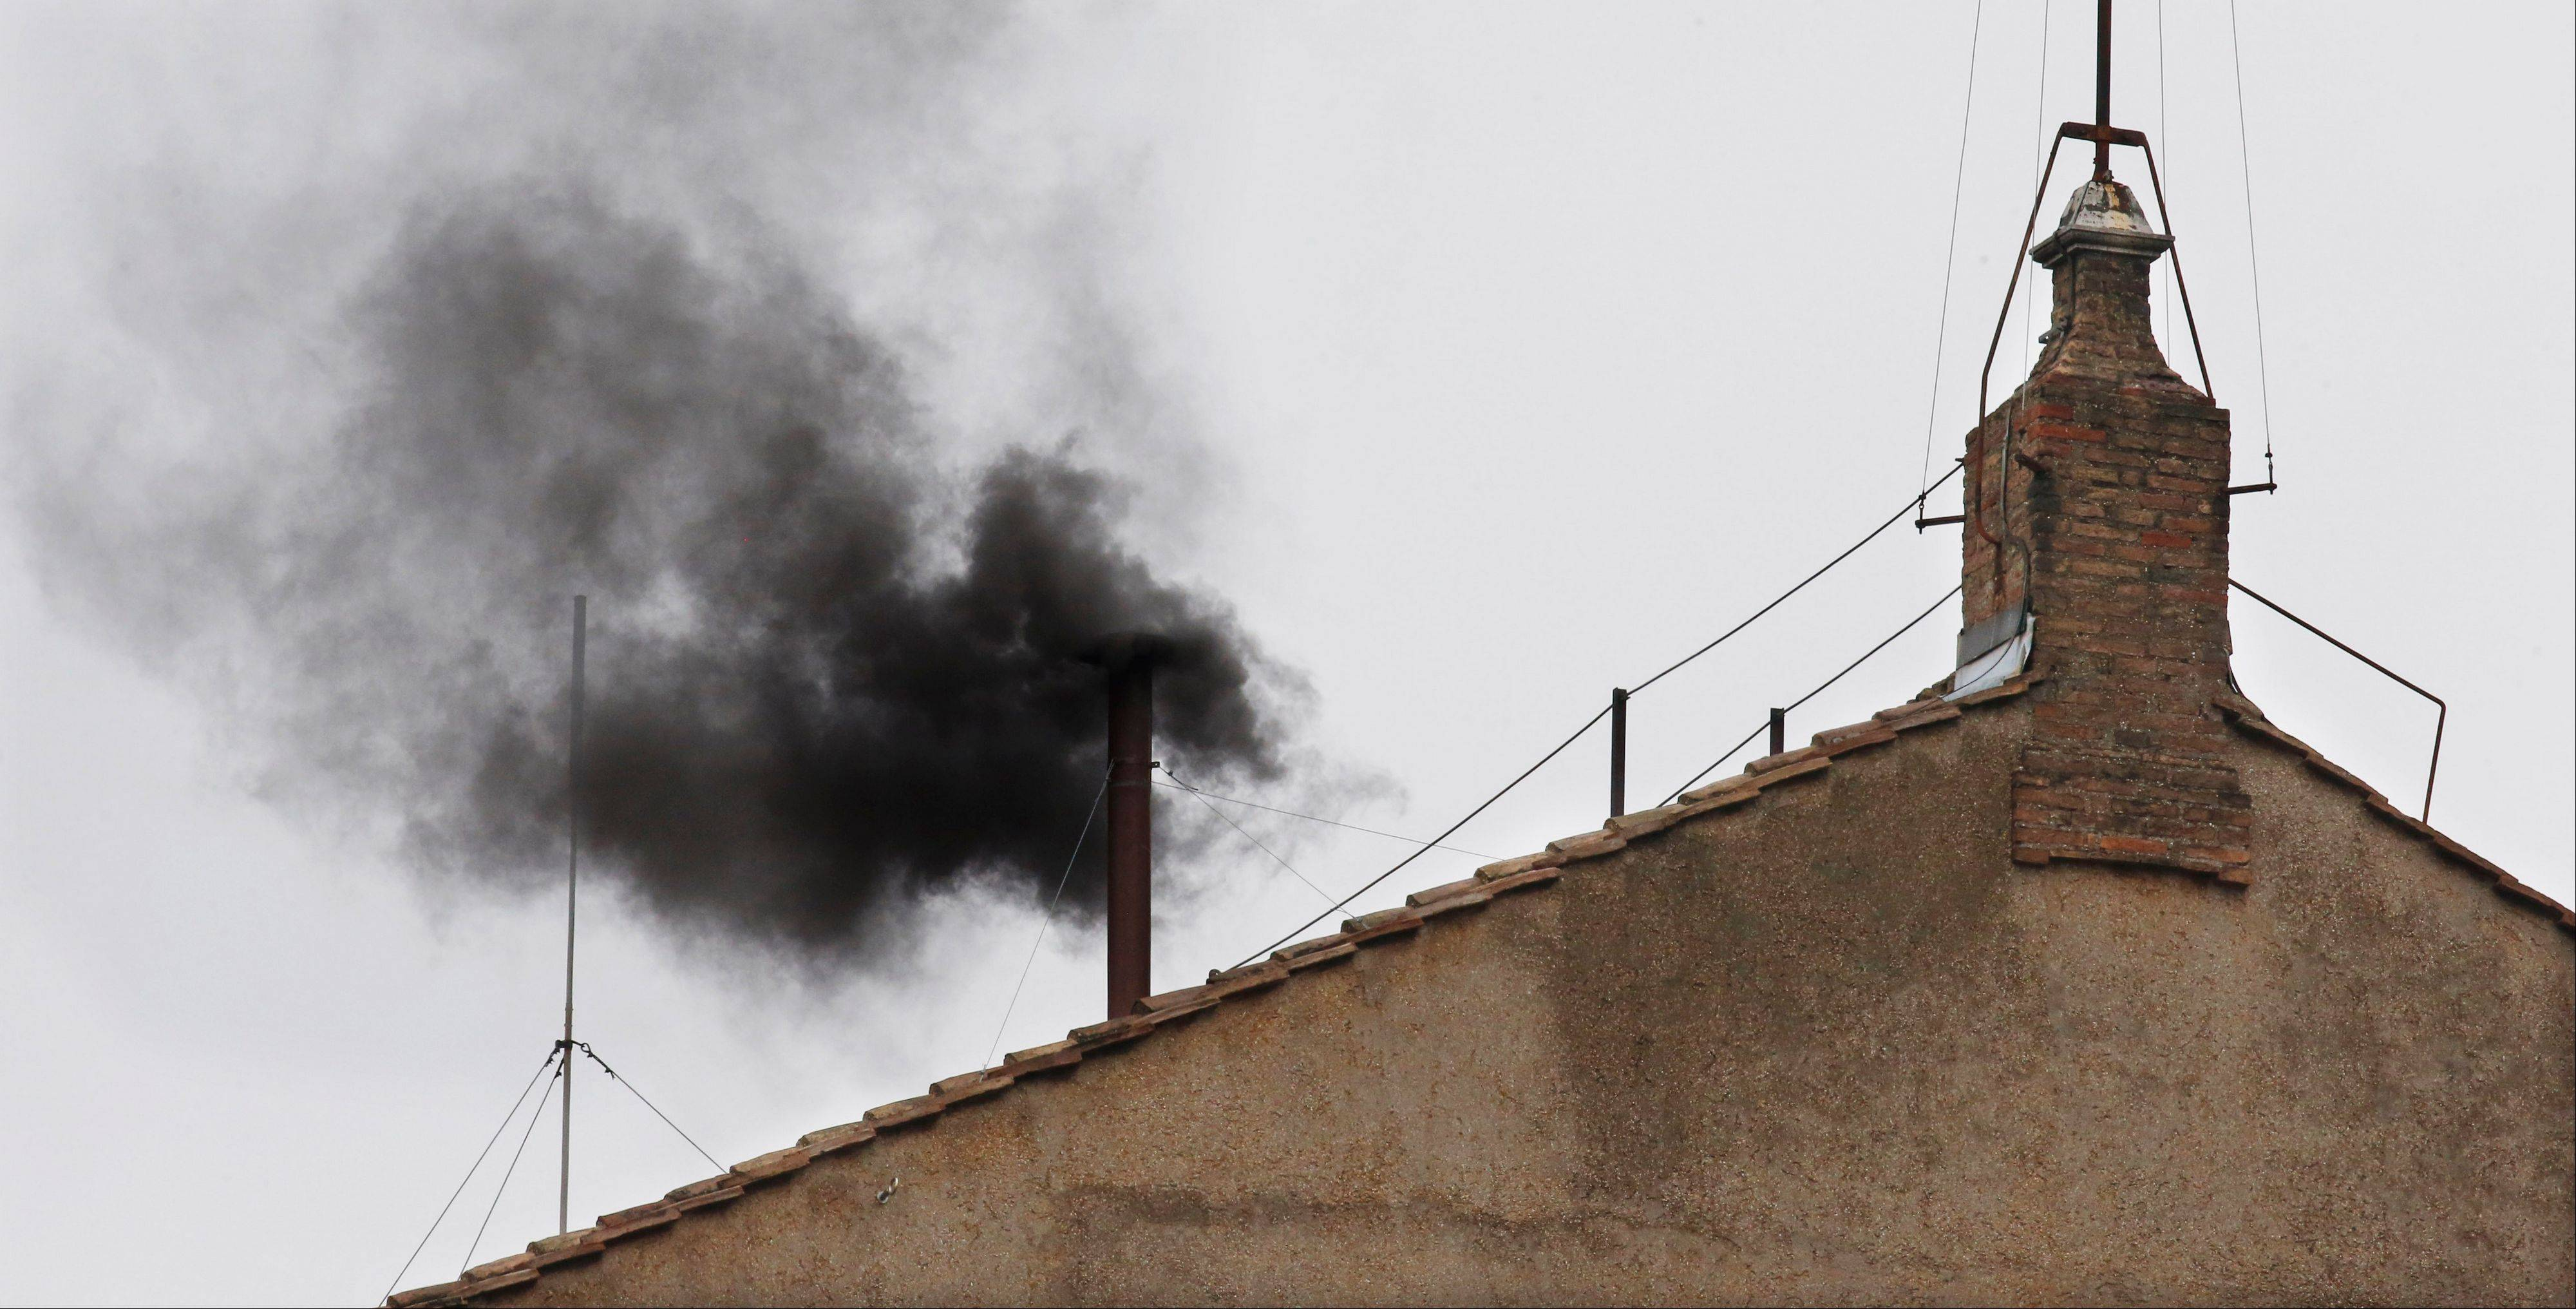 Ingredients of papal conclave smoke signals